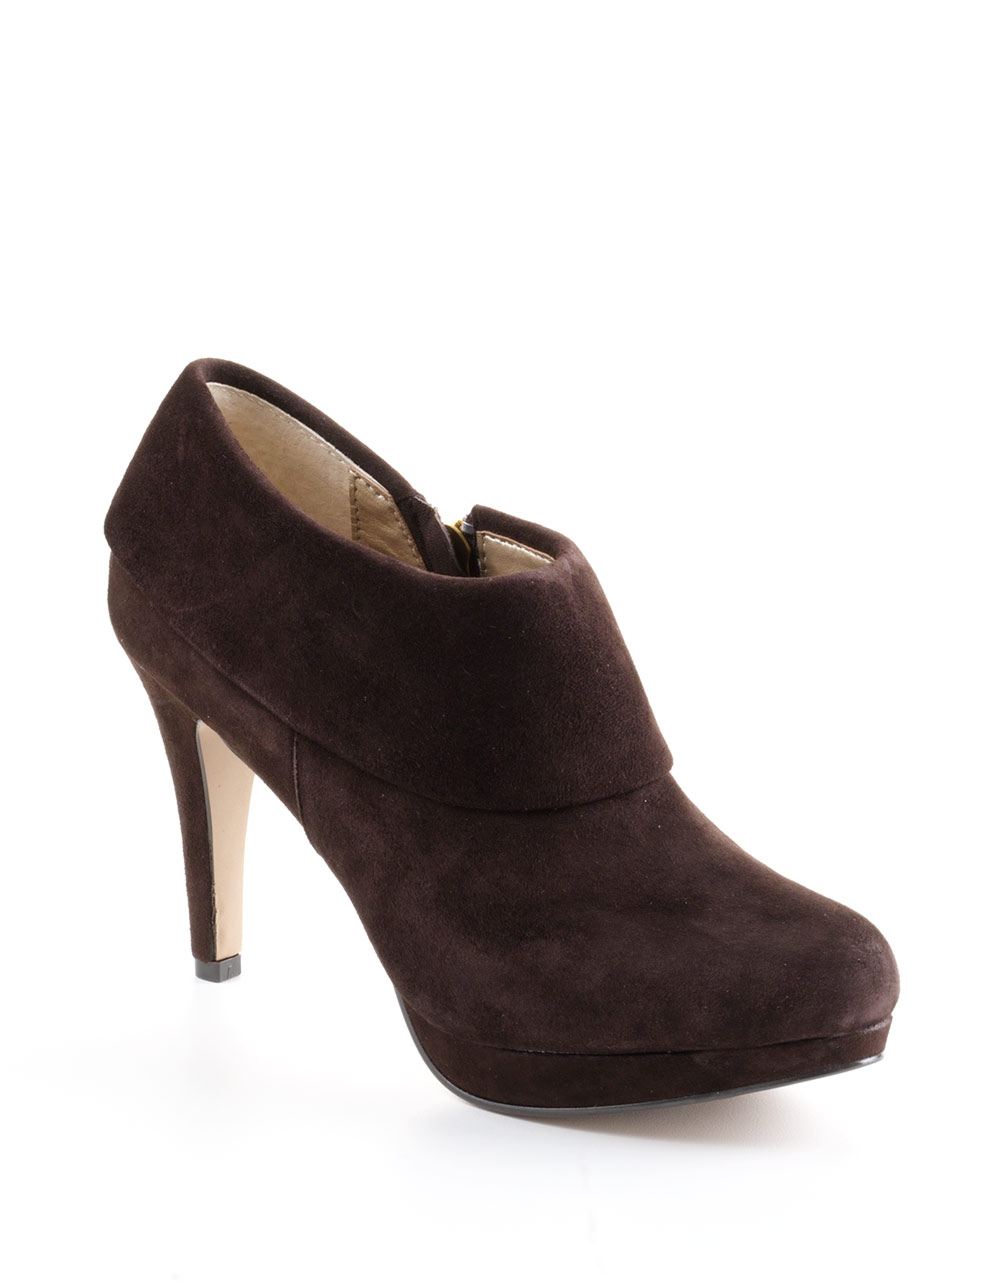 adrienne vittadini polenta suede ankle boots in brown